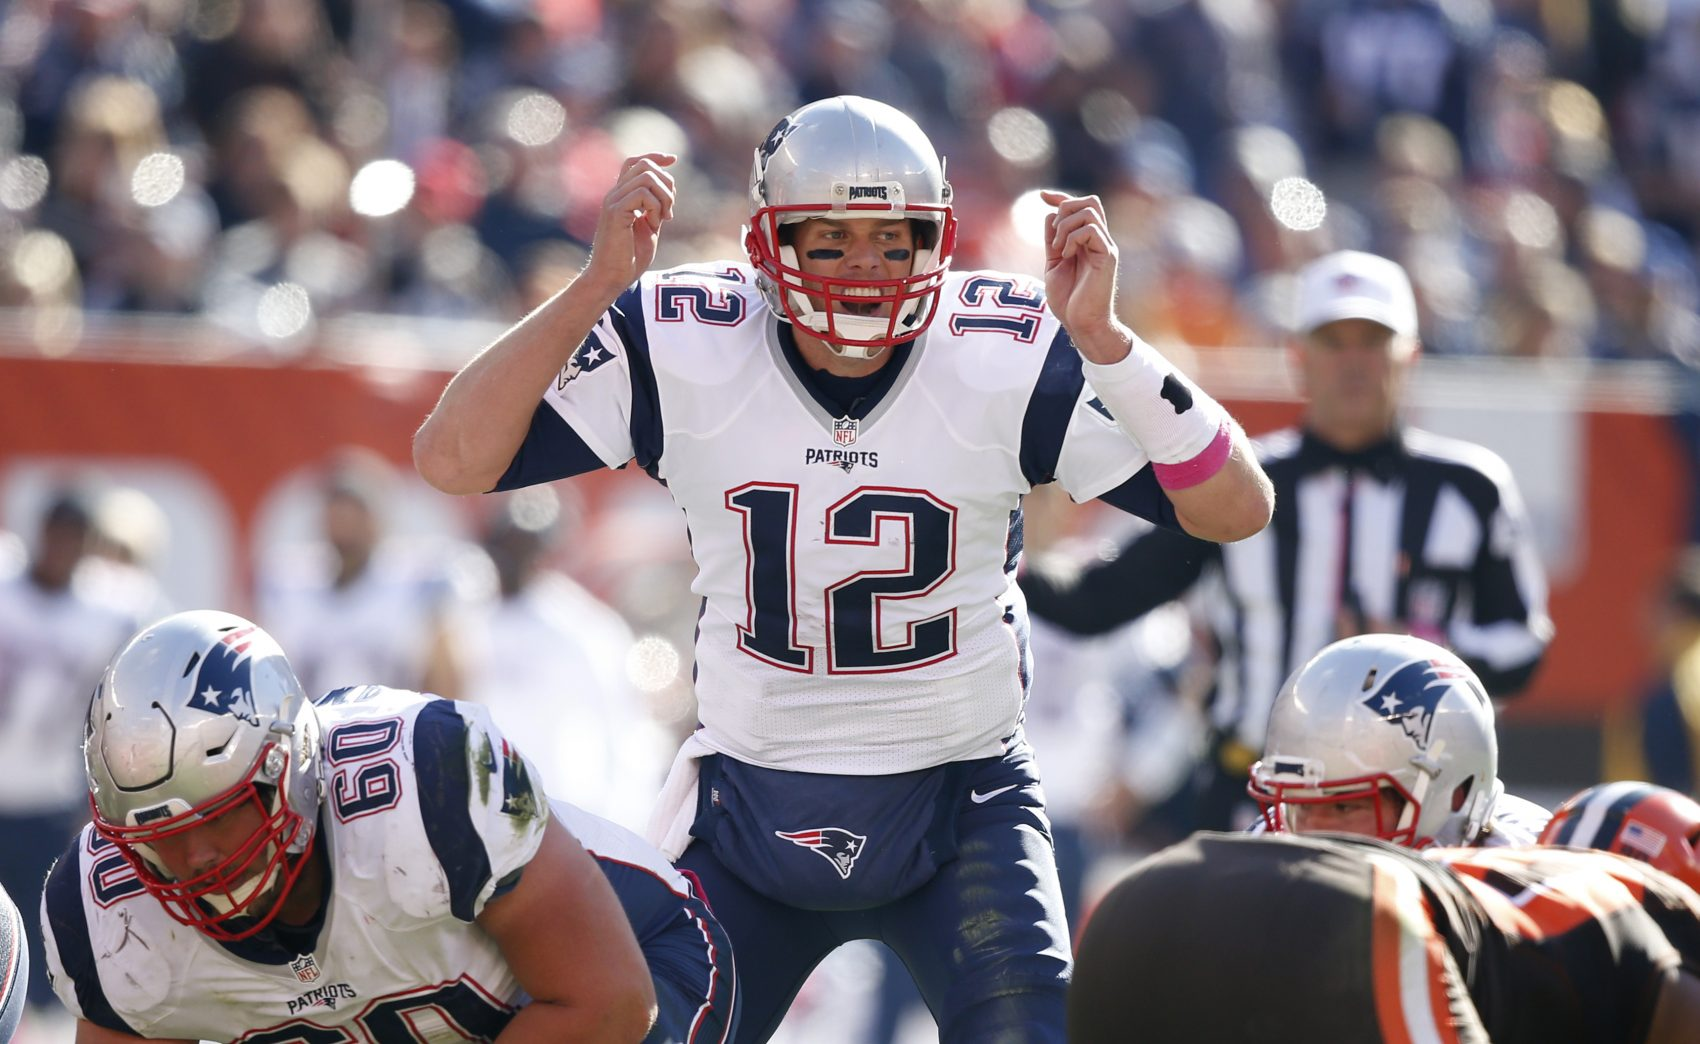 New England Patriots quarterback Tom Brady shouts at the line in the second half of Sunday's game against the Cleveland Browns. (Ron Schwane/AP)